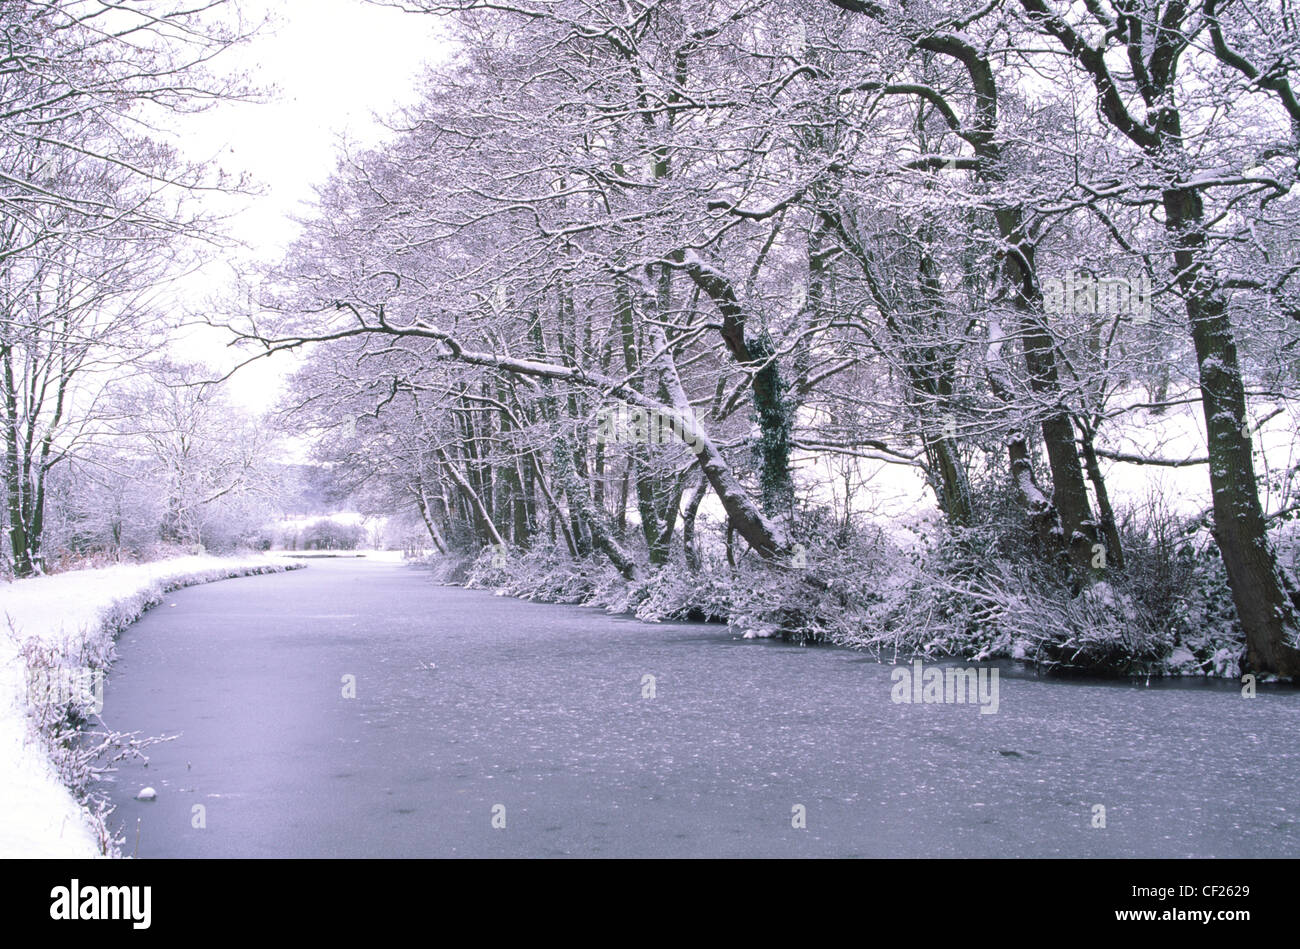 The Staffordshire Worcestshire Canal shortly after a winter snowfall. - Stock Image